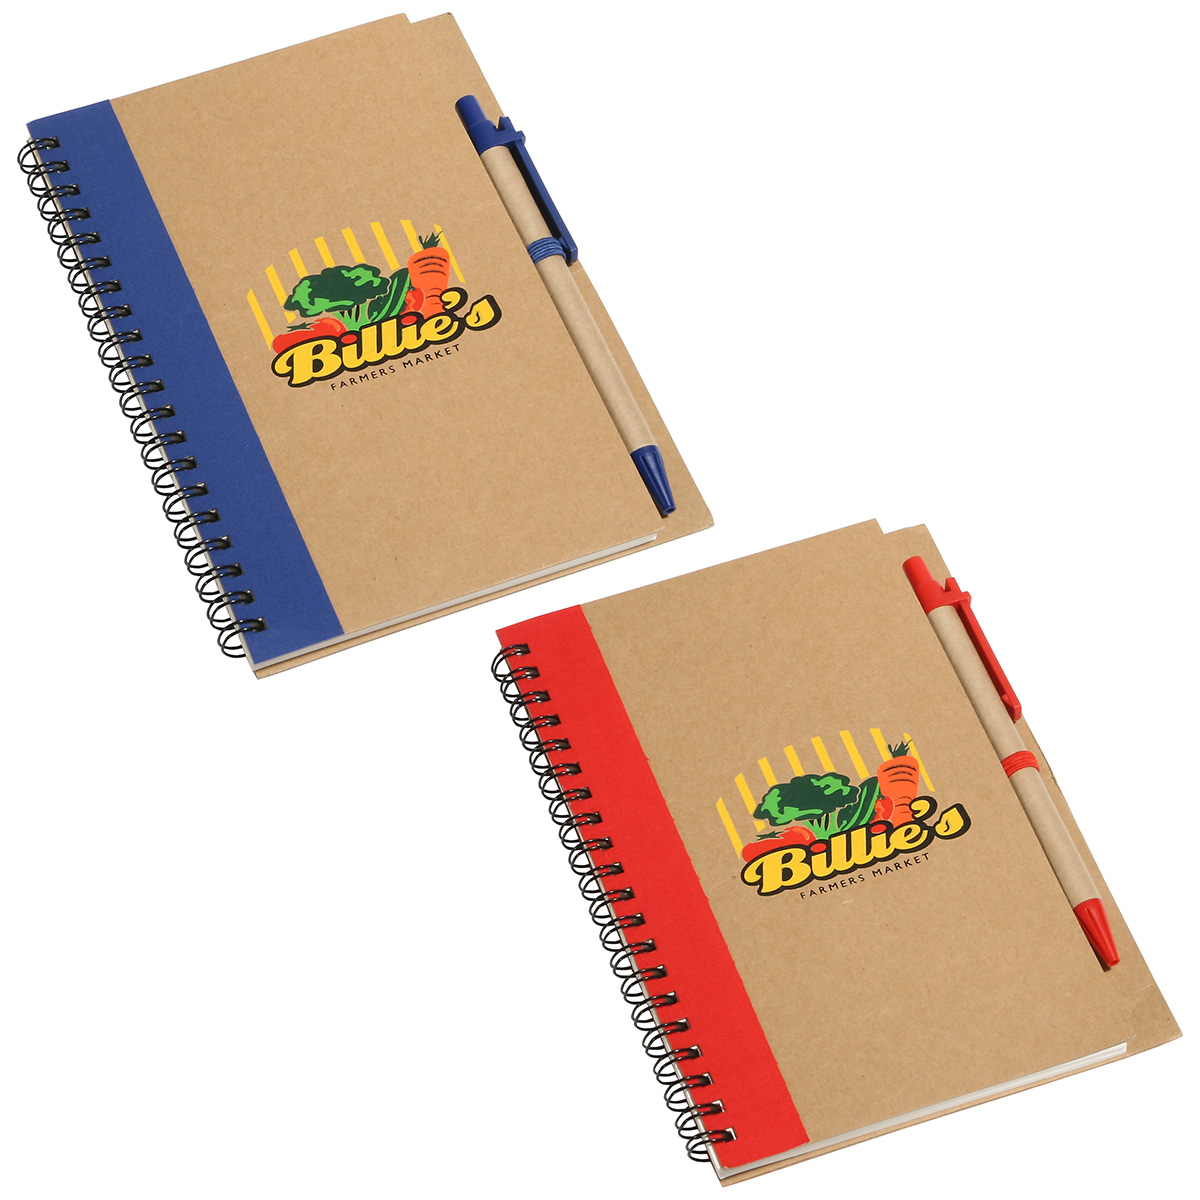 Promo Write Recycled Notebook, WOF-RN10 - 1 Colour Imprint